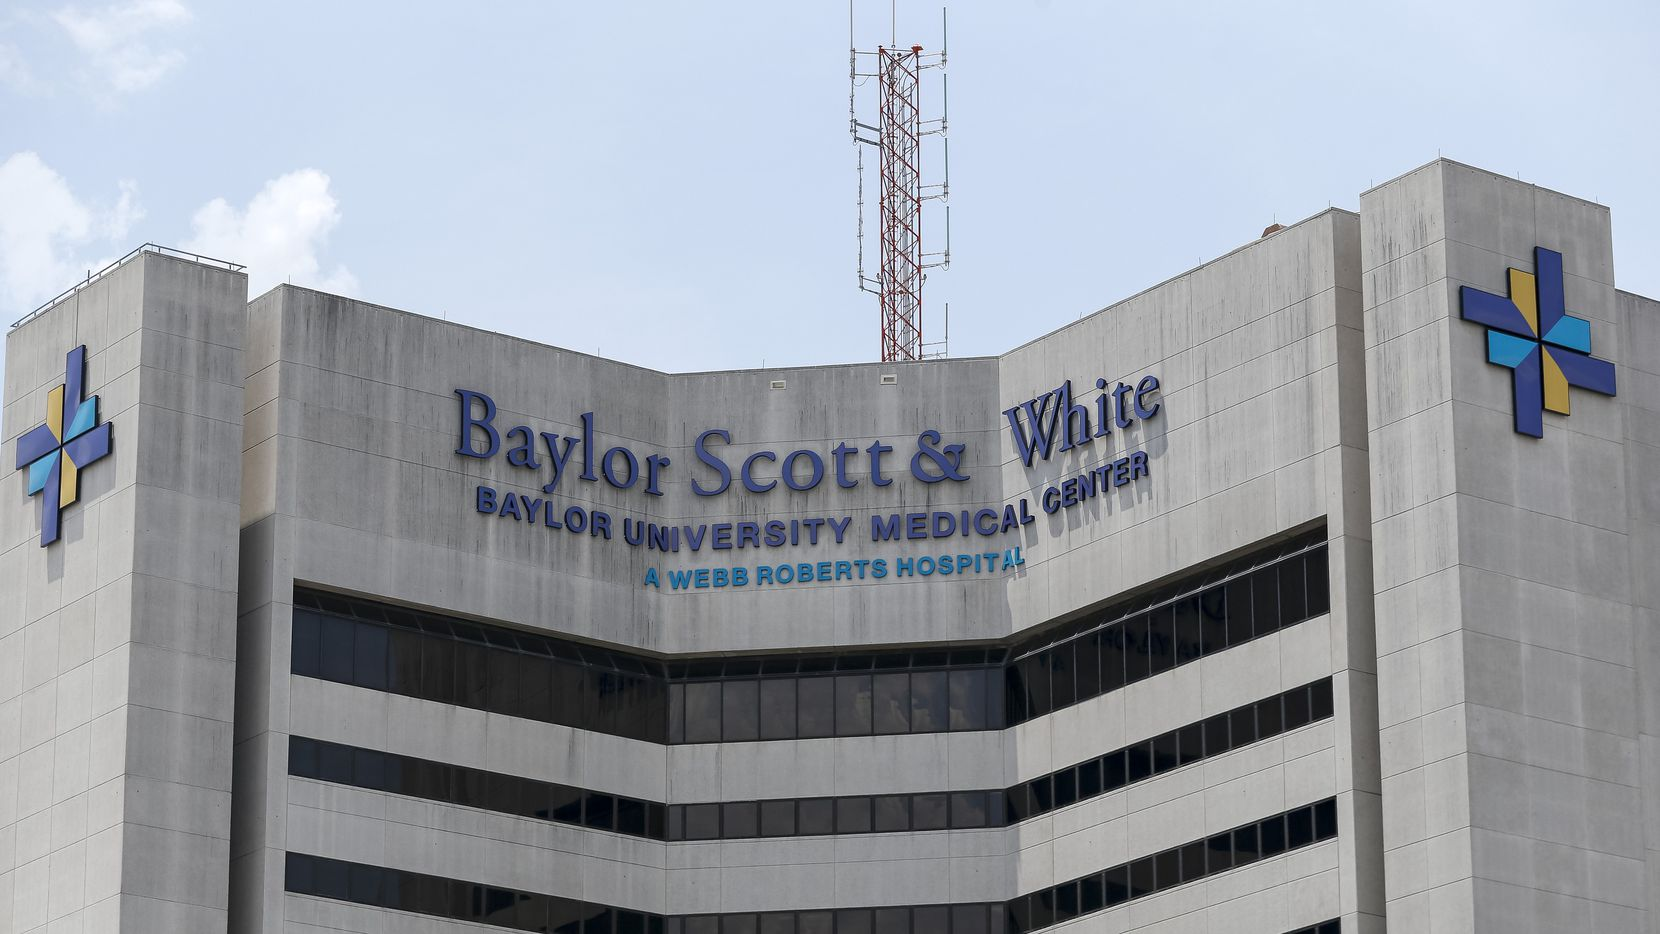 Baylor University Medical Center on Wednesday, July 28, 2021, in Dallas. Baylor Scott & White Health said it will require all employees to be vaccinated against COVID-19 by Oct. 1.